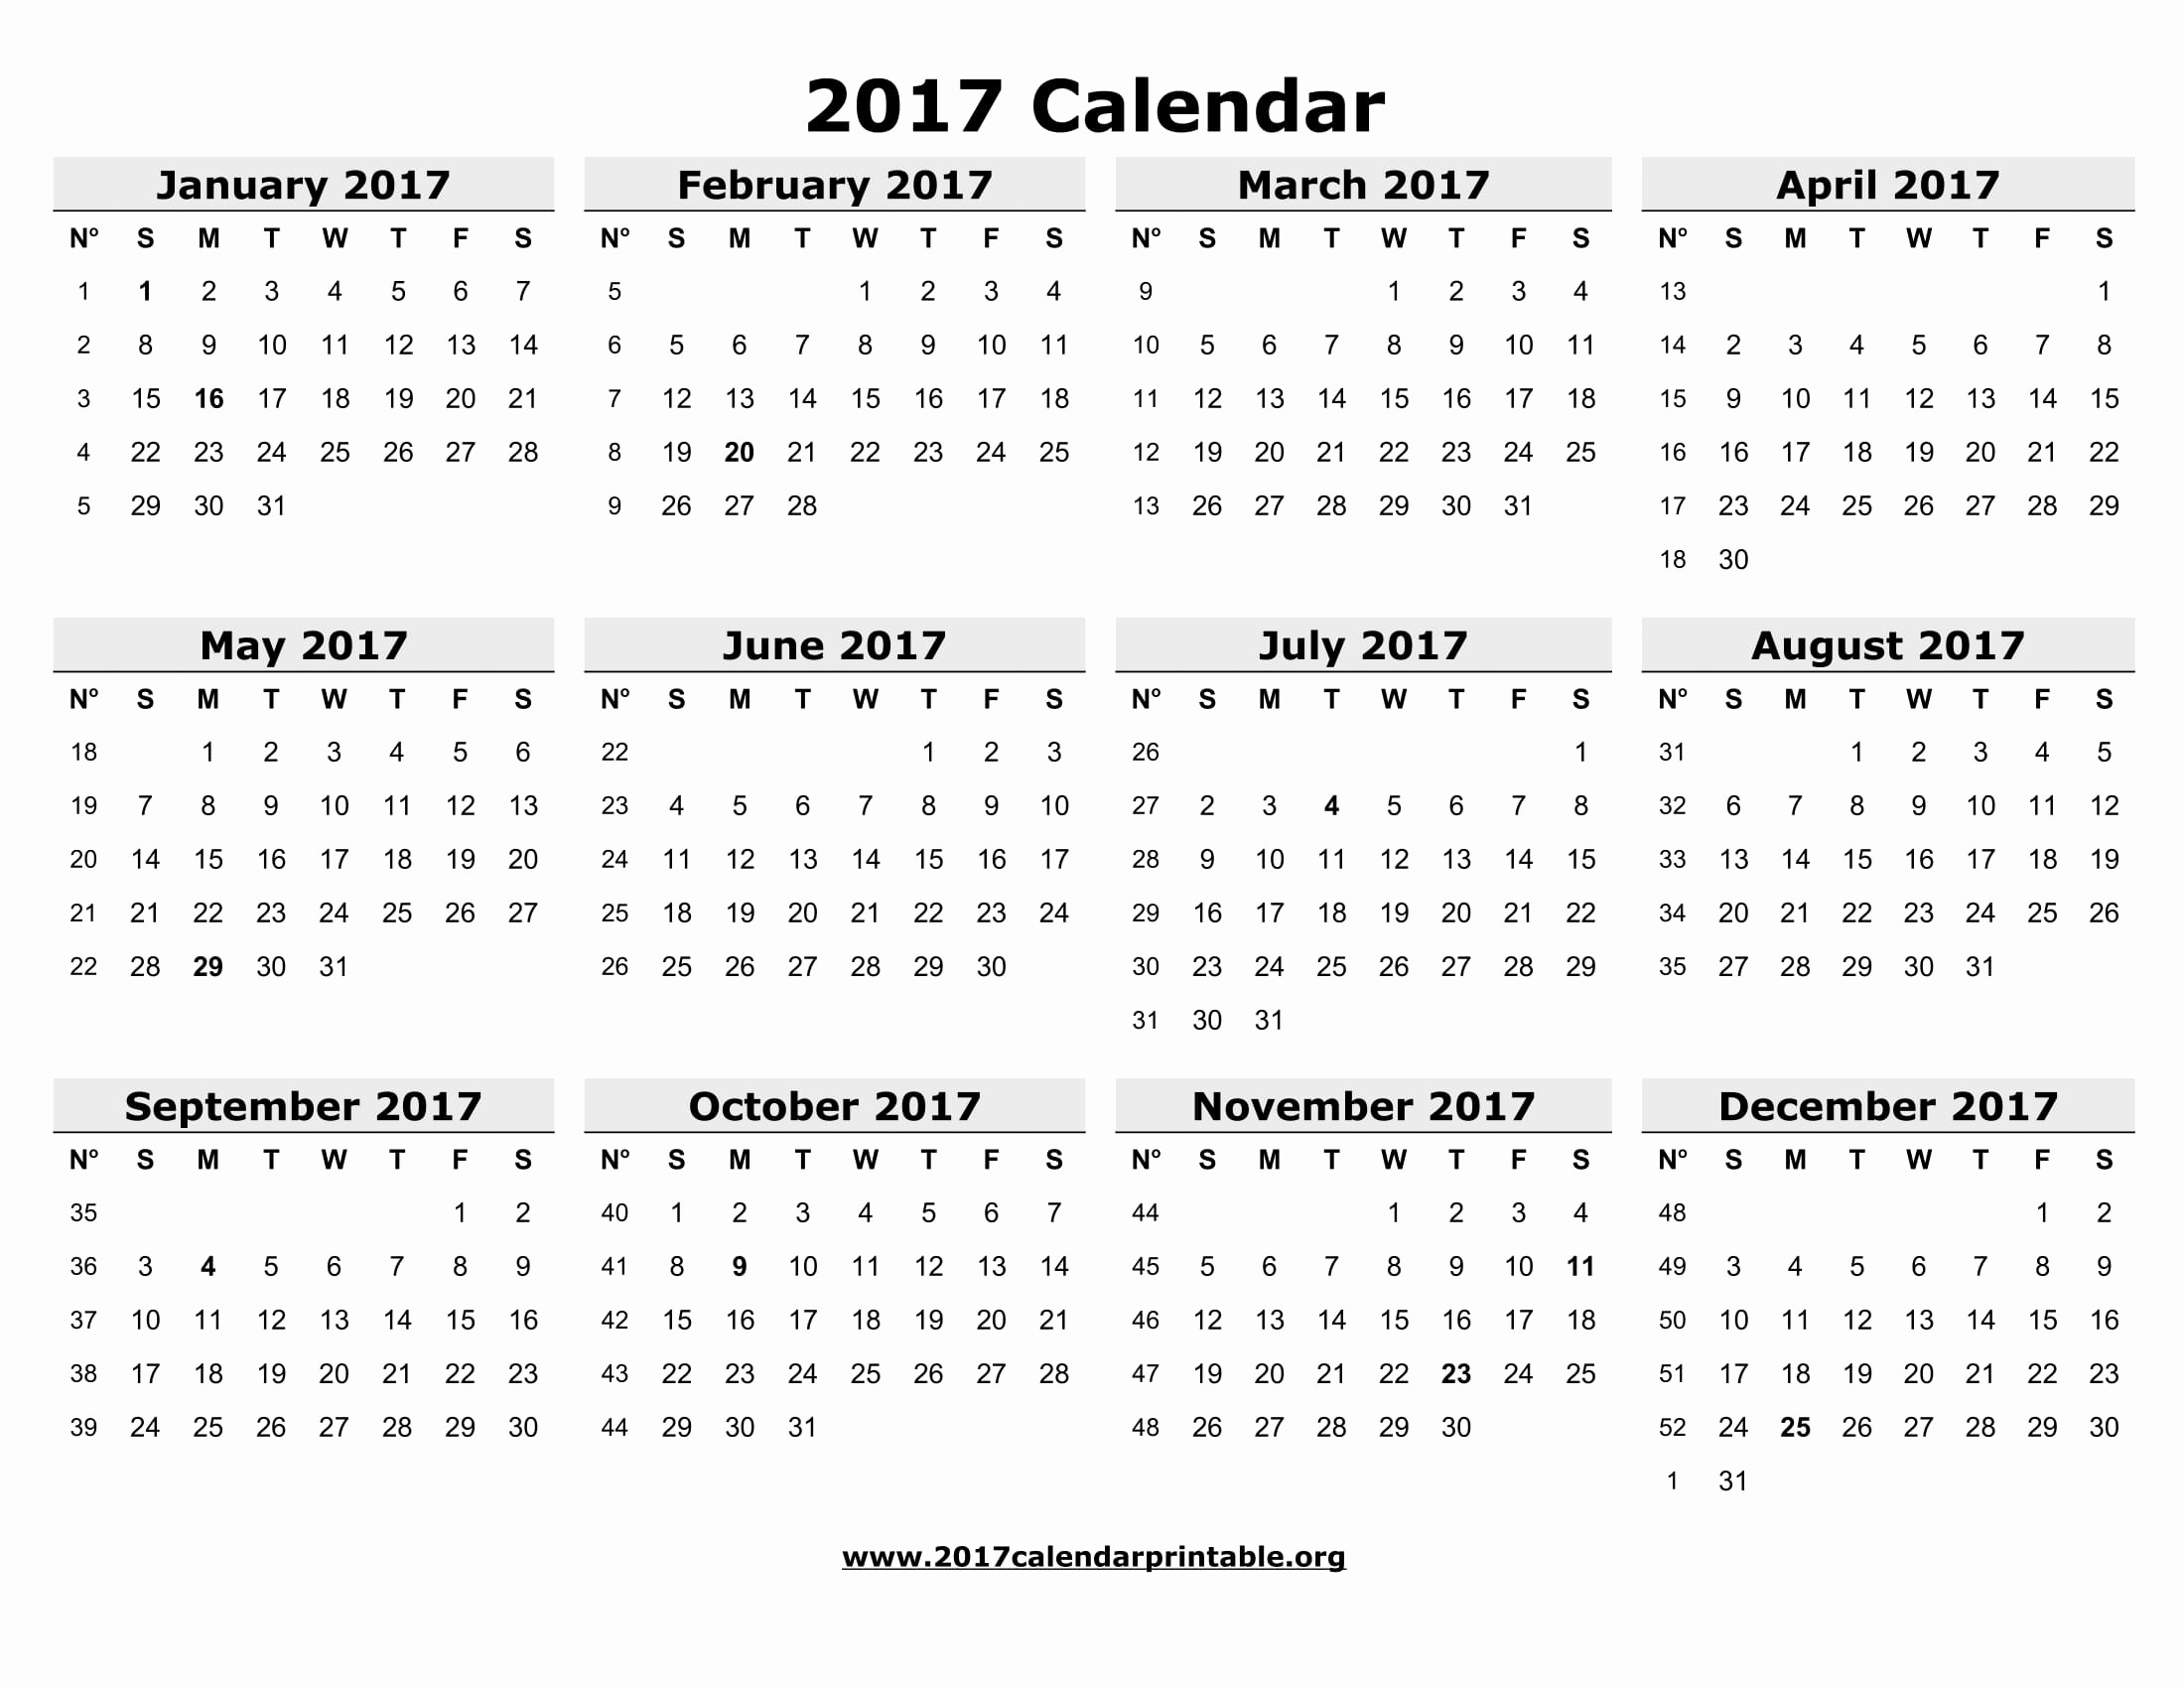 2017 Calendar Template with Notes Awesome 12 Month Calendar 2017 Printable with Notes